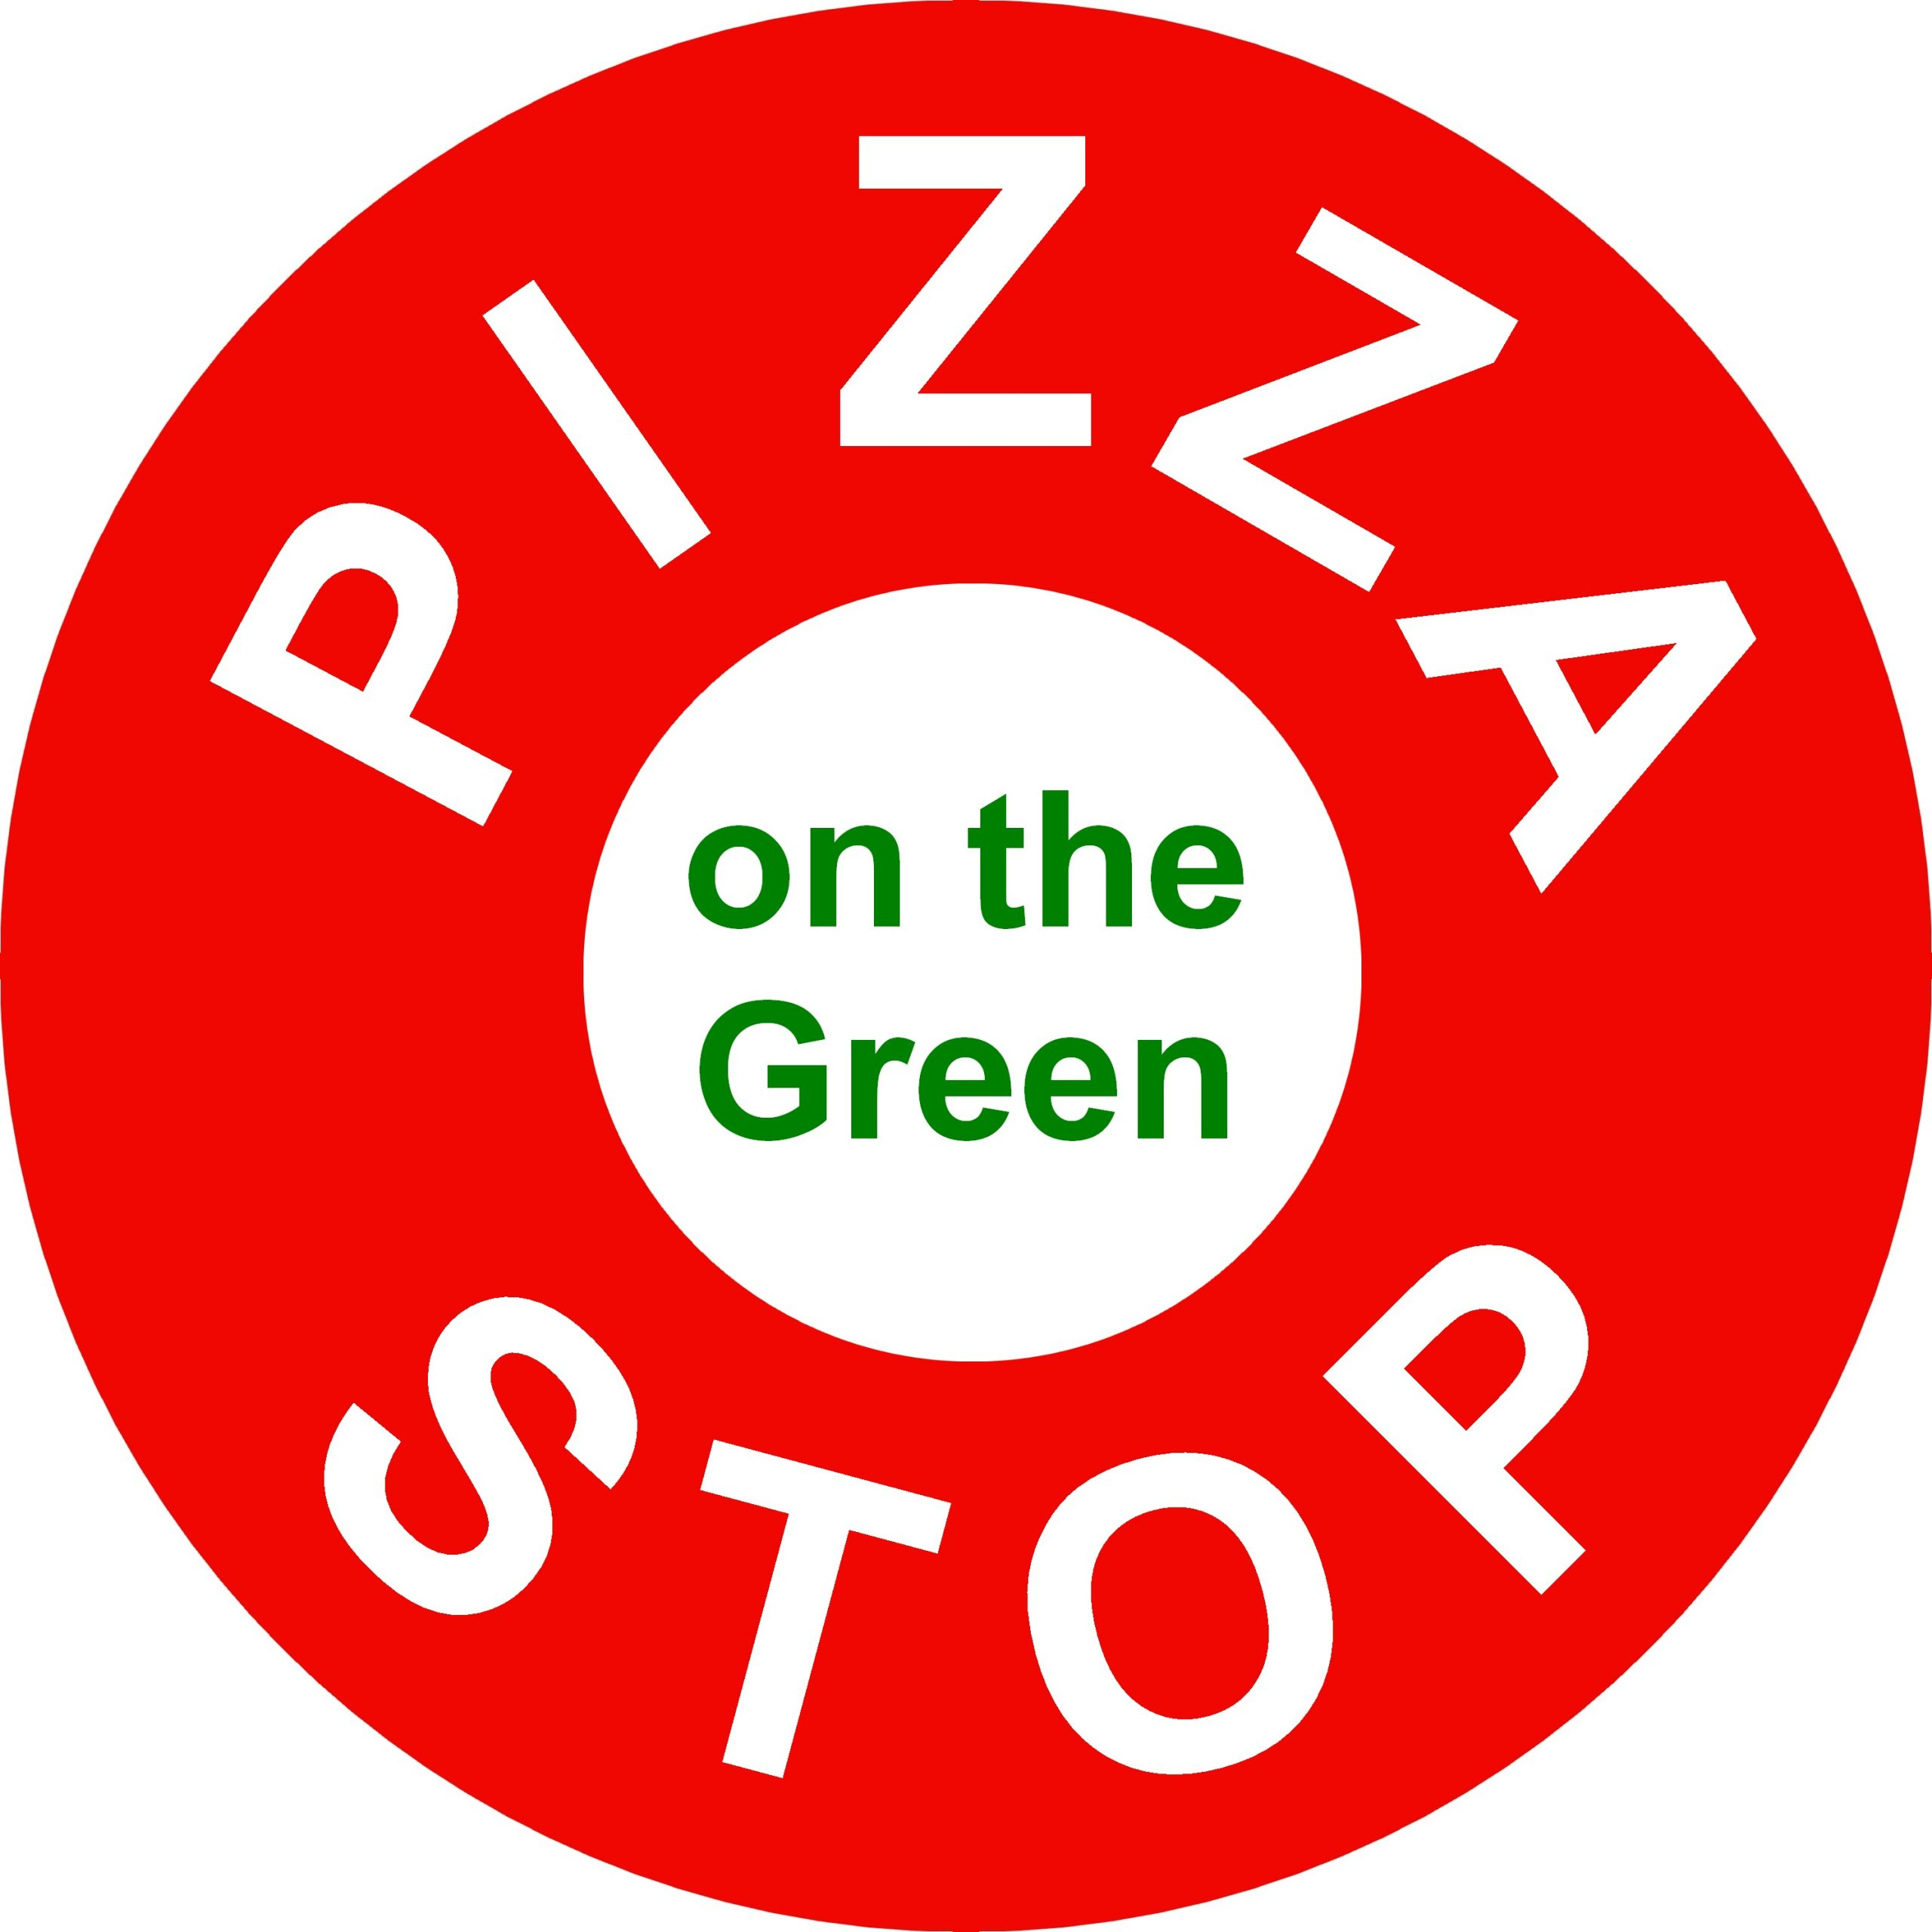 Pizza on the Green